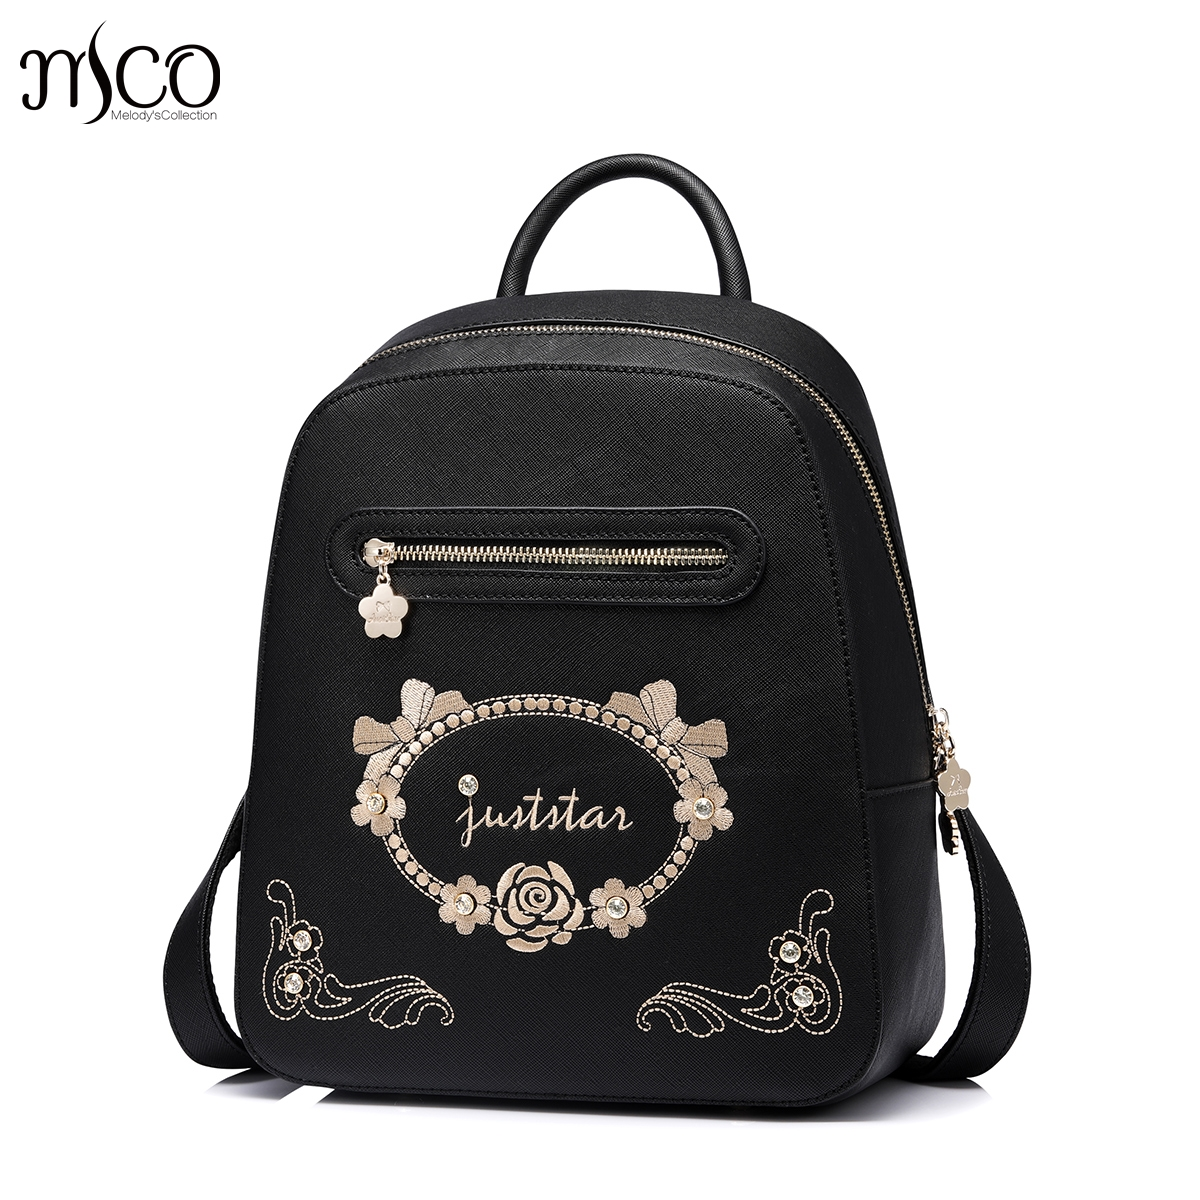 2017 Fashion Embroidery Girl Backpacks Cute School Bags New Women Backpack PU Leather Female Shoulder Bag mochilas mujer